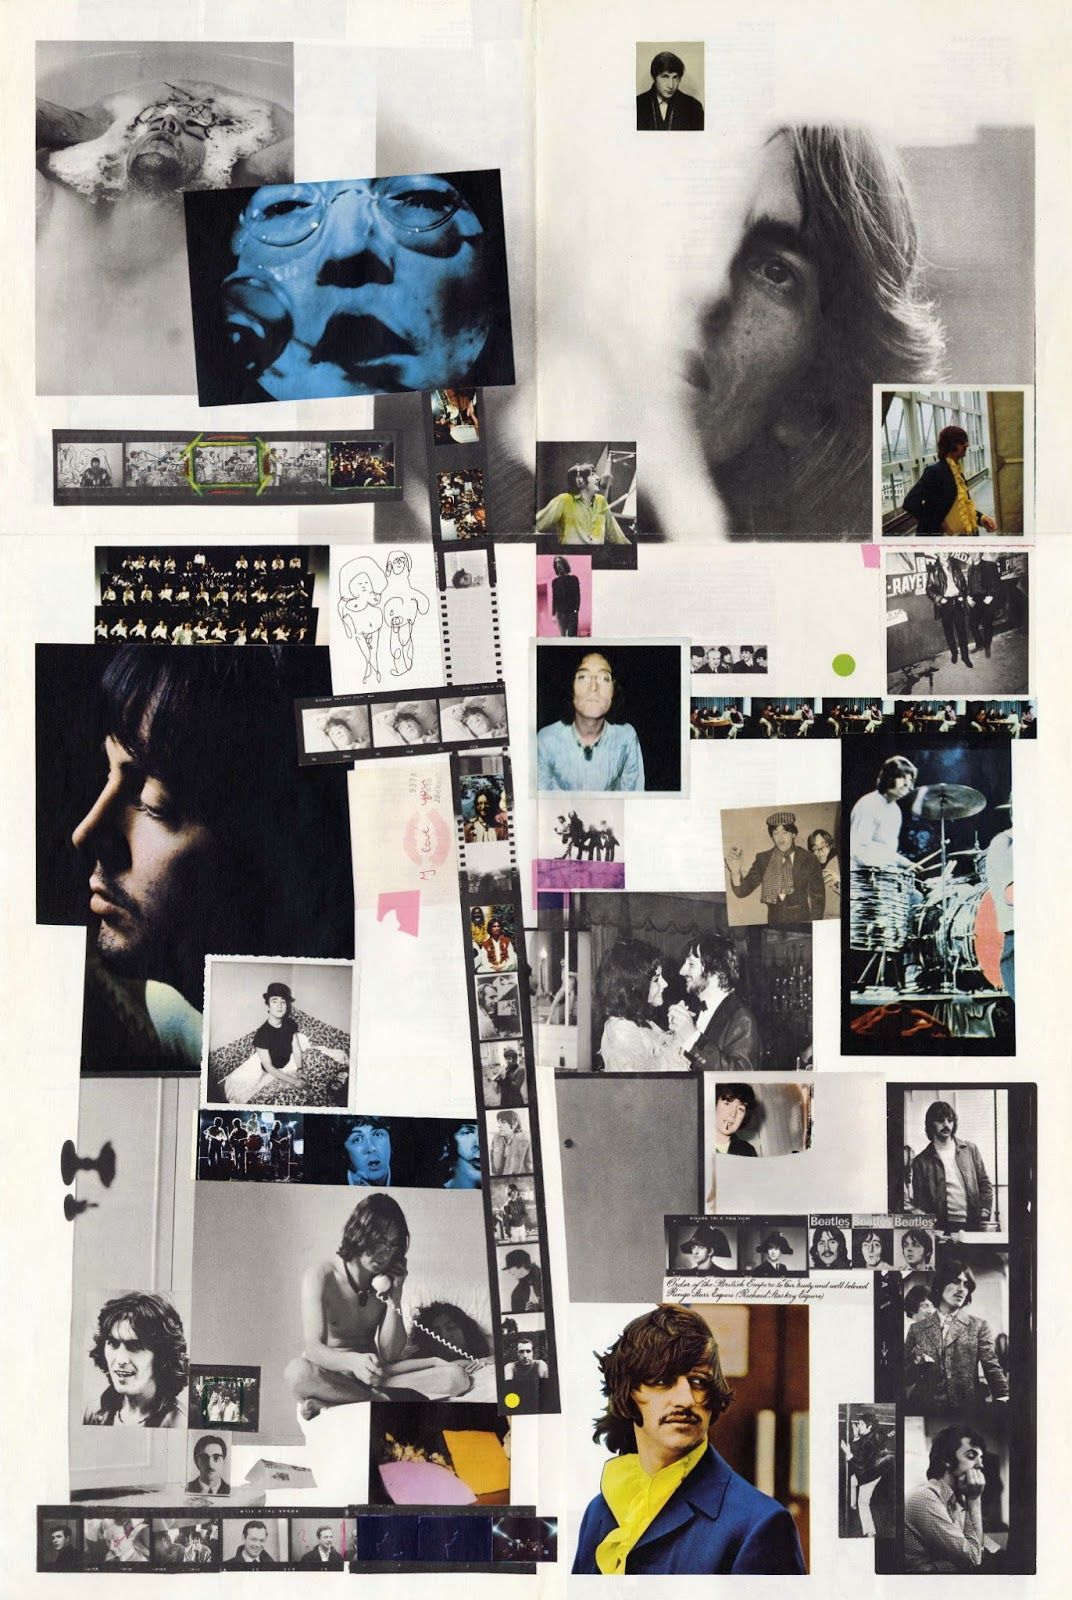 White Album, Richard Hamilton's